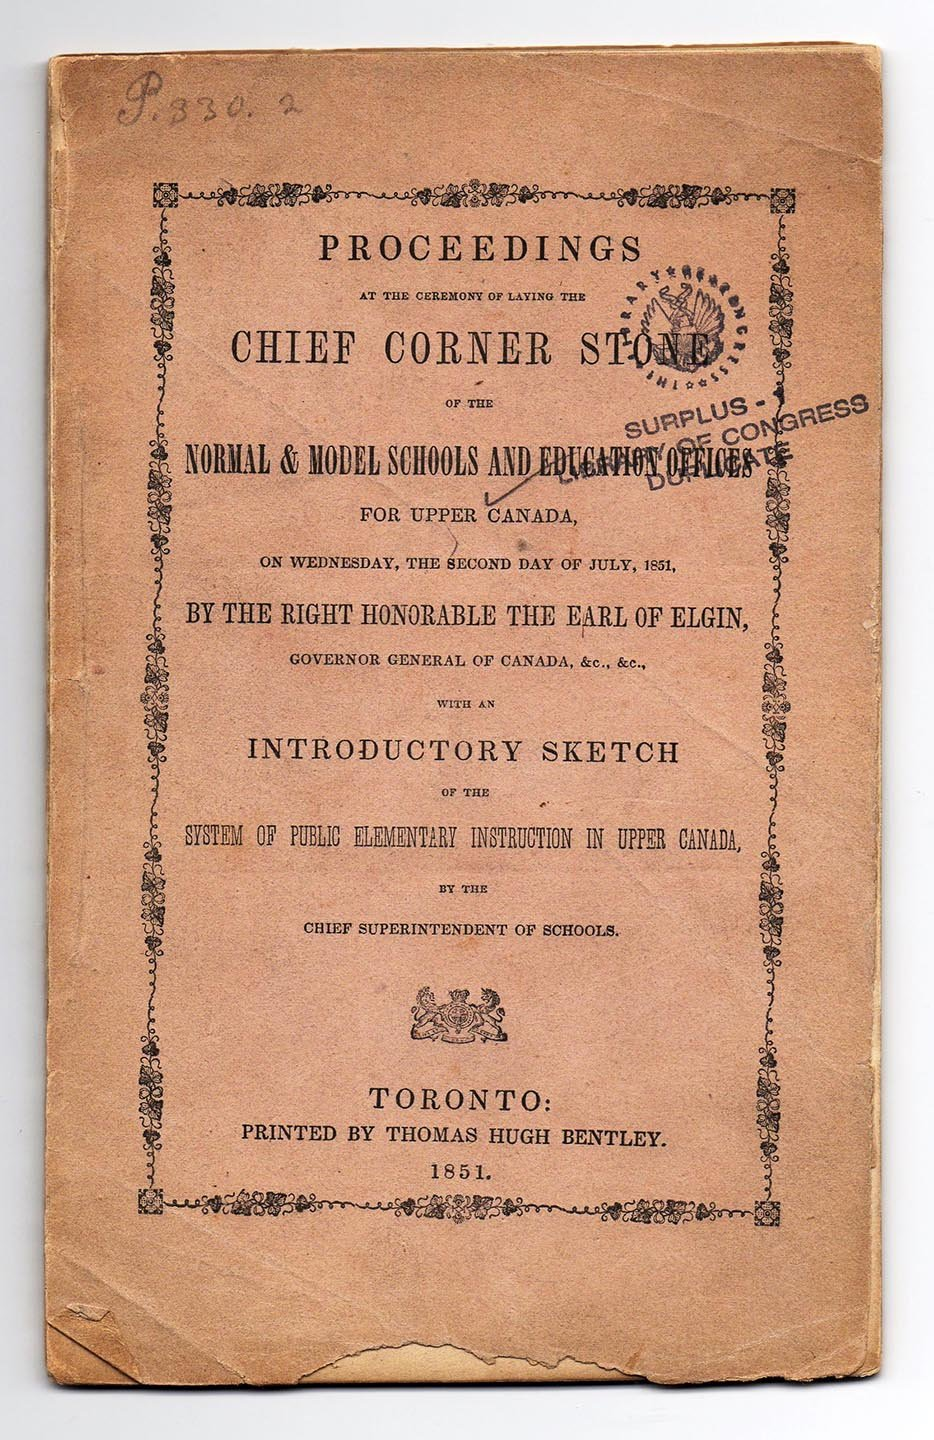 Proceedings at the Ceremony of Laying the Chief Corner Stone of the Normal & Model Schools and Education Offices for Upper Canada, On Wednesday, the Second Day of July, 1851